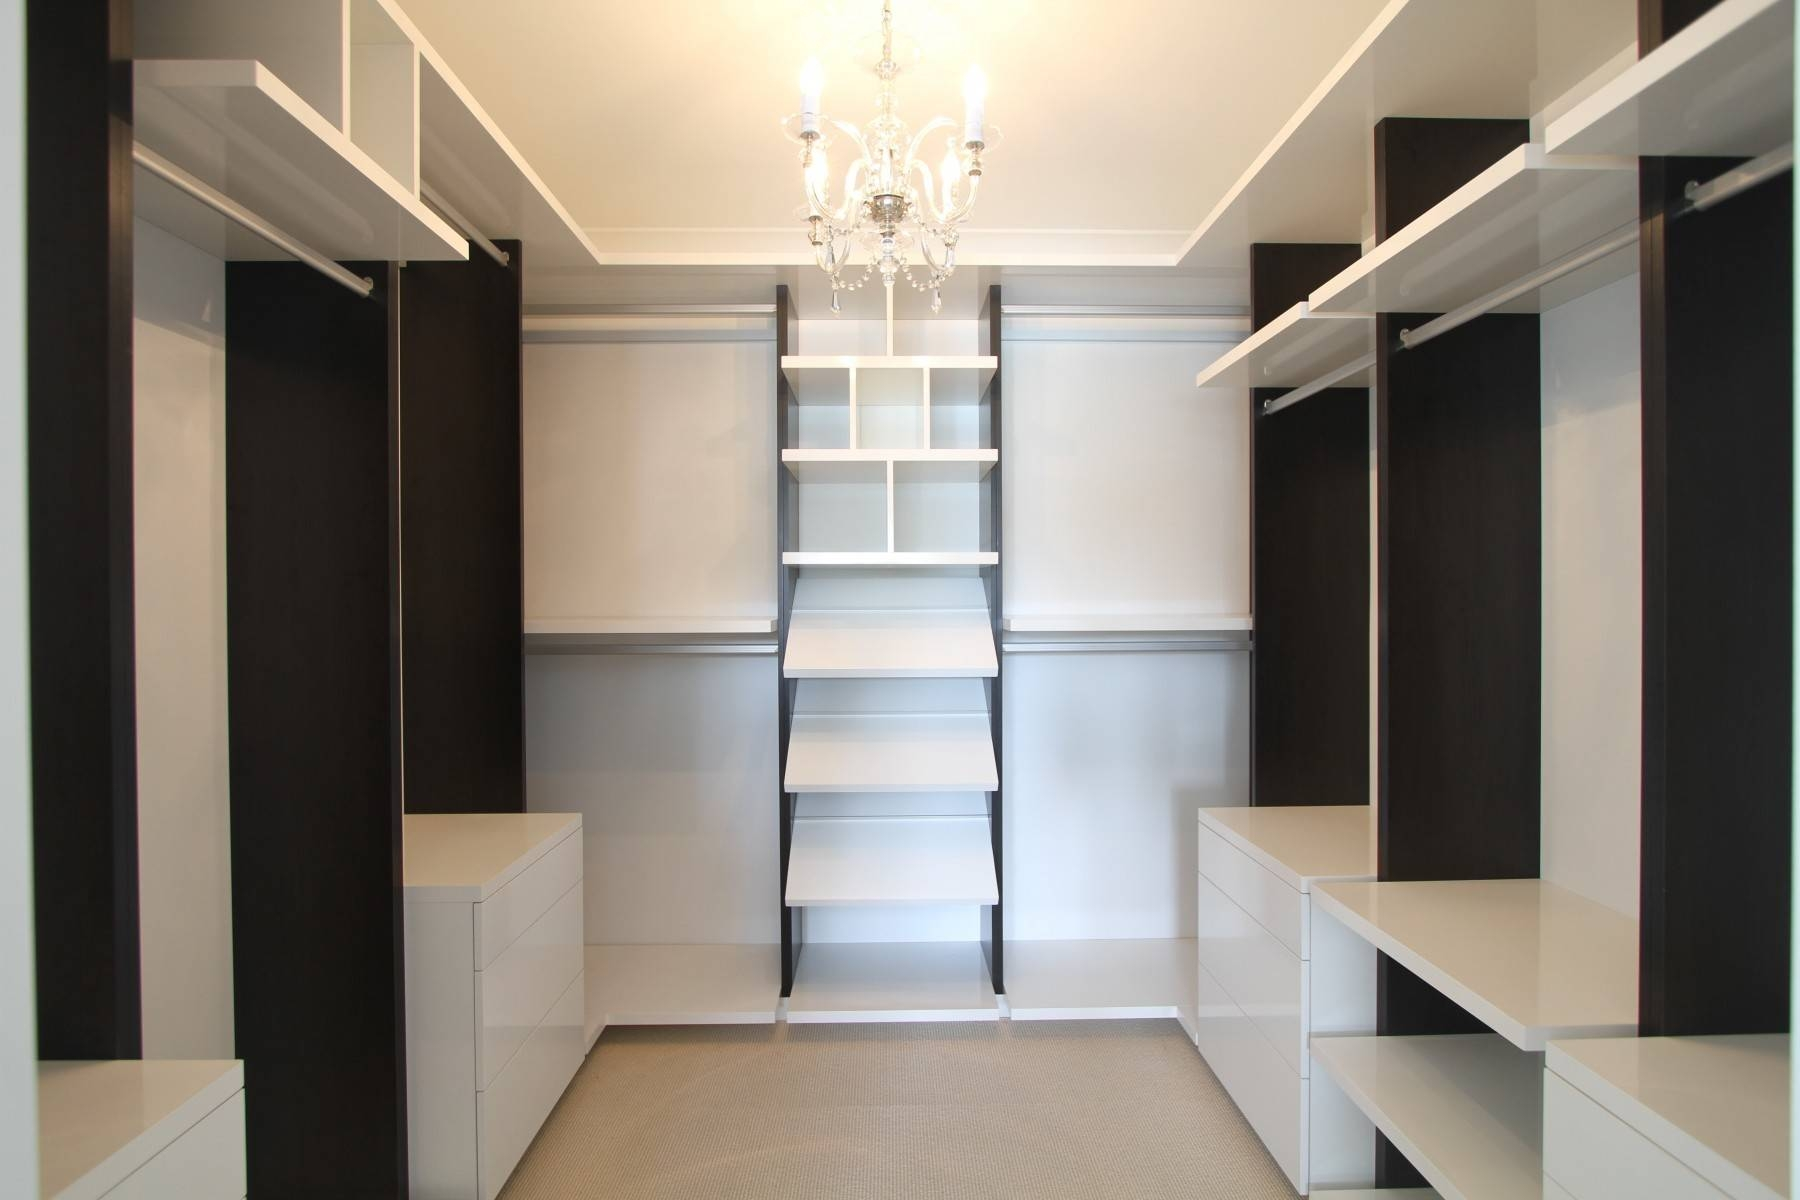 Signature Wardrobes – Just Wardrobes & Storage Pertaining To Signature Wardrobes (View 11 of 15)